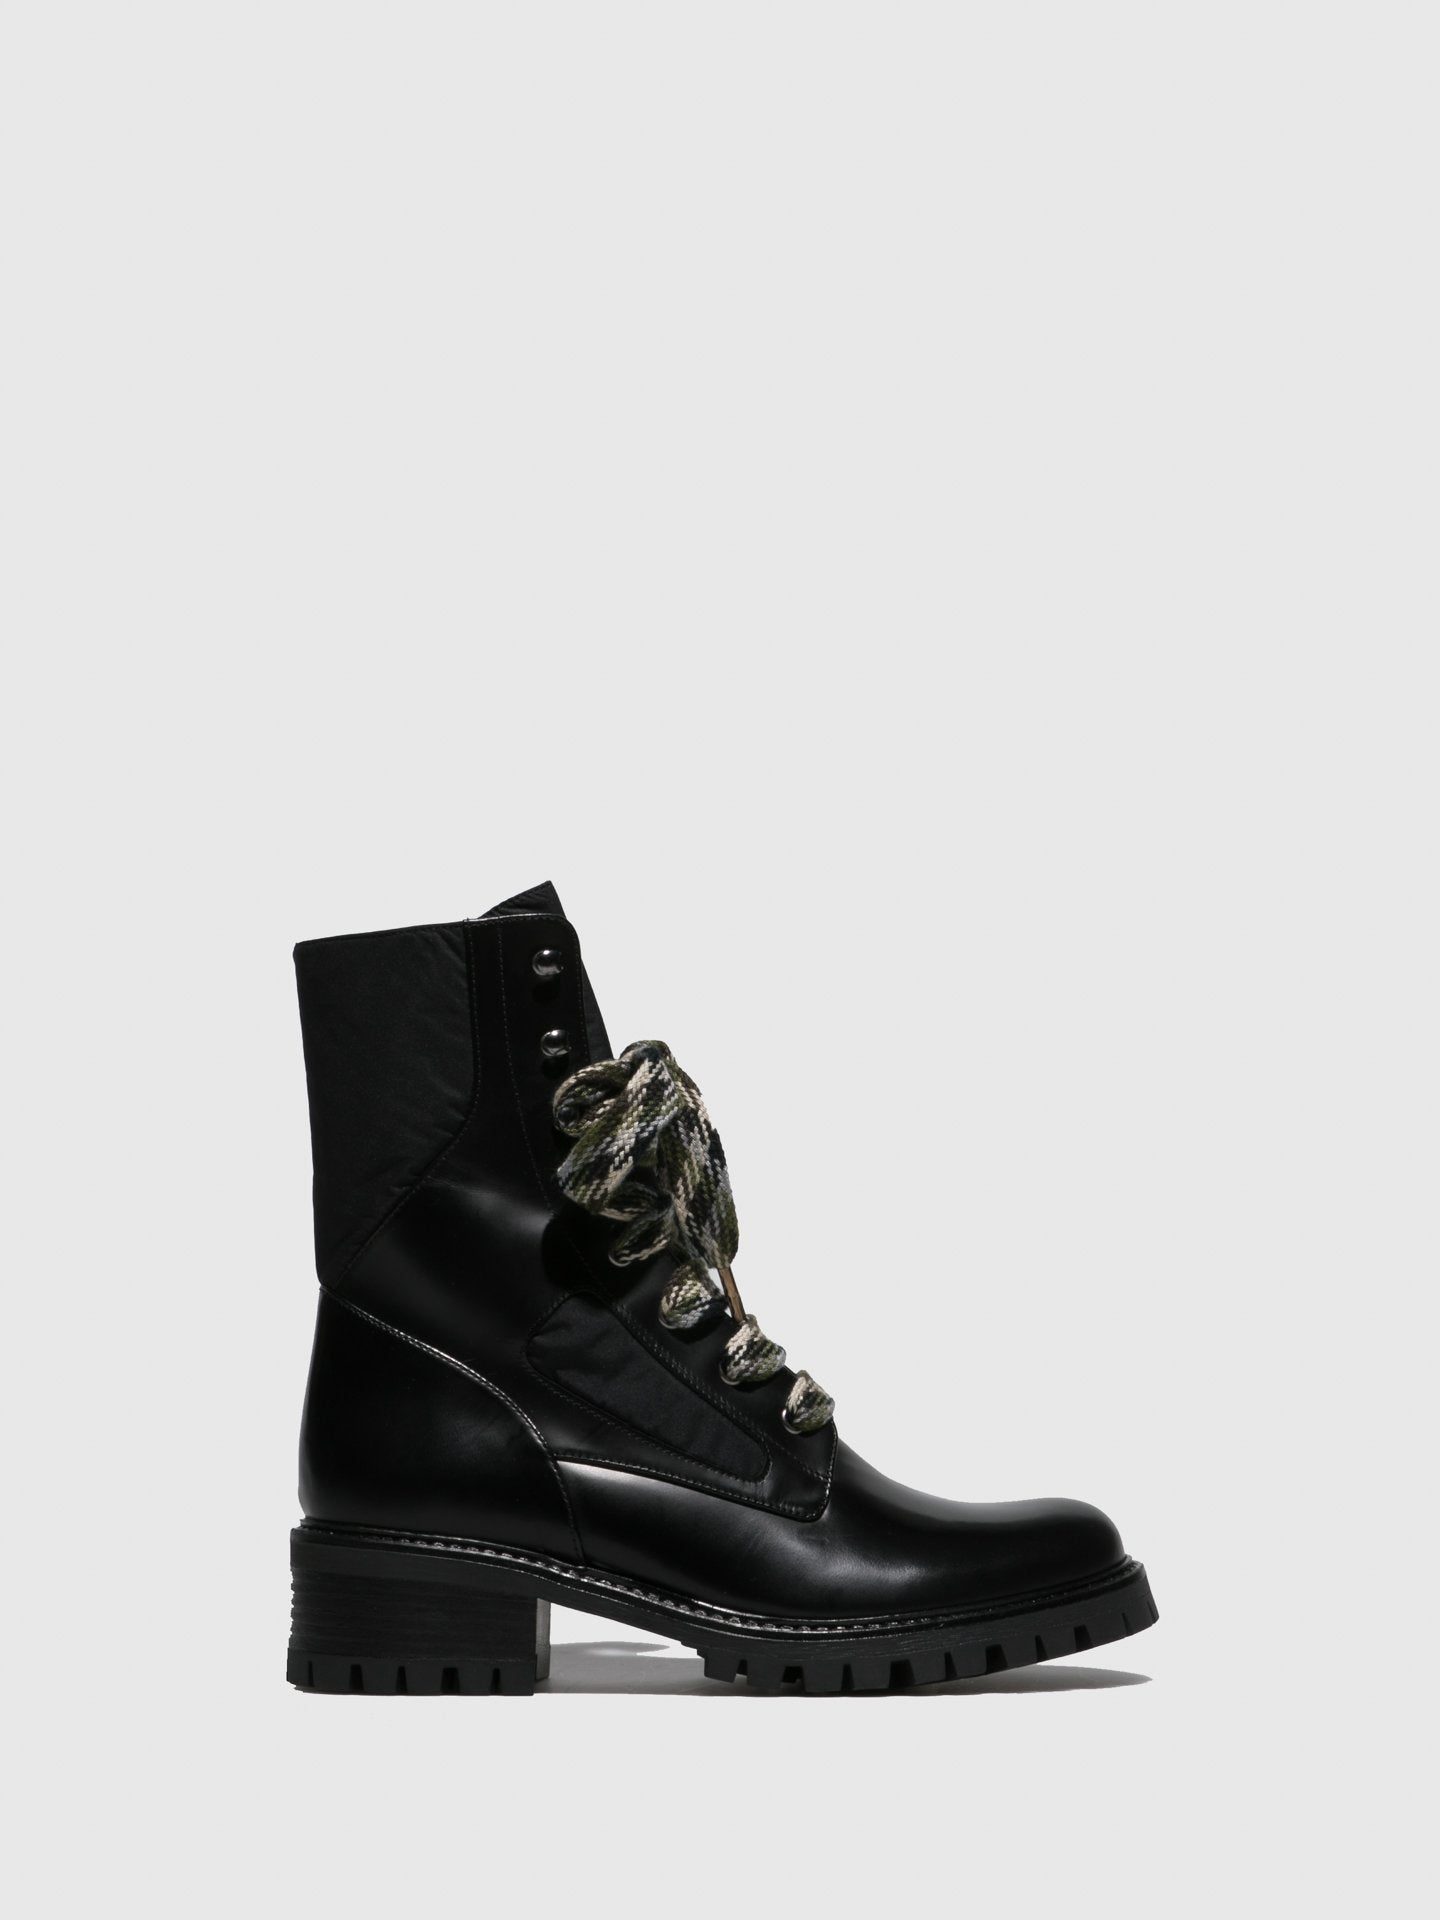 JJ Heitor Black Lace-up Ankle Boots